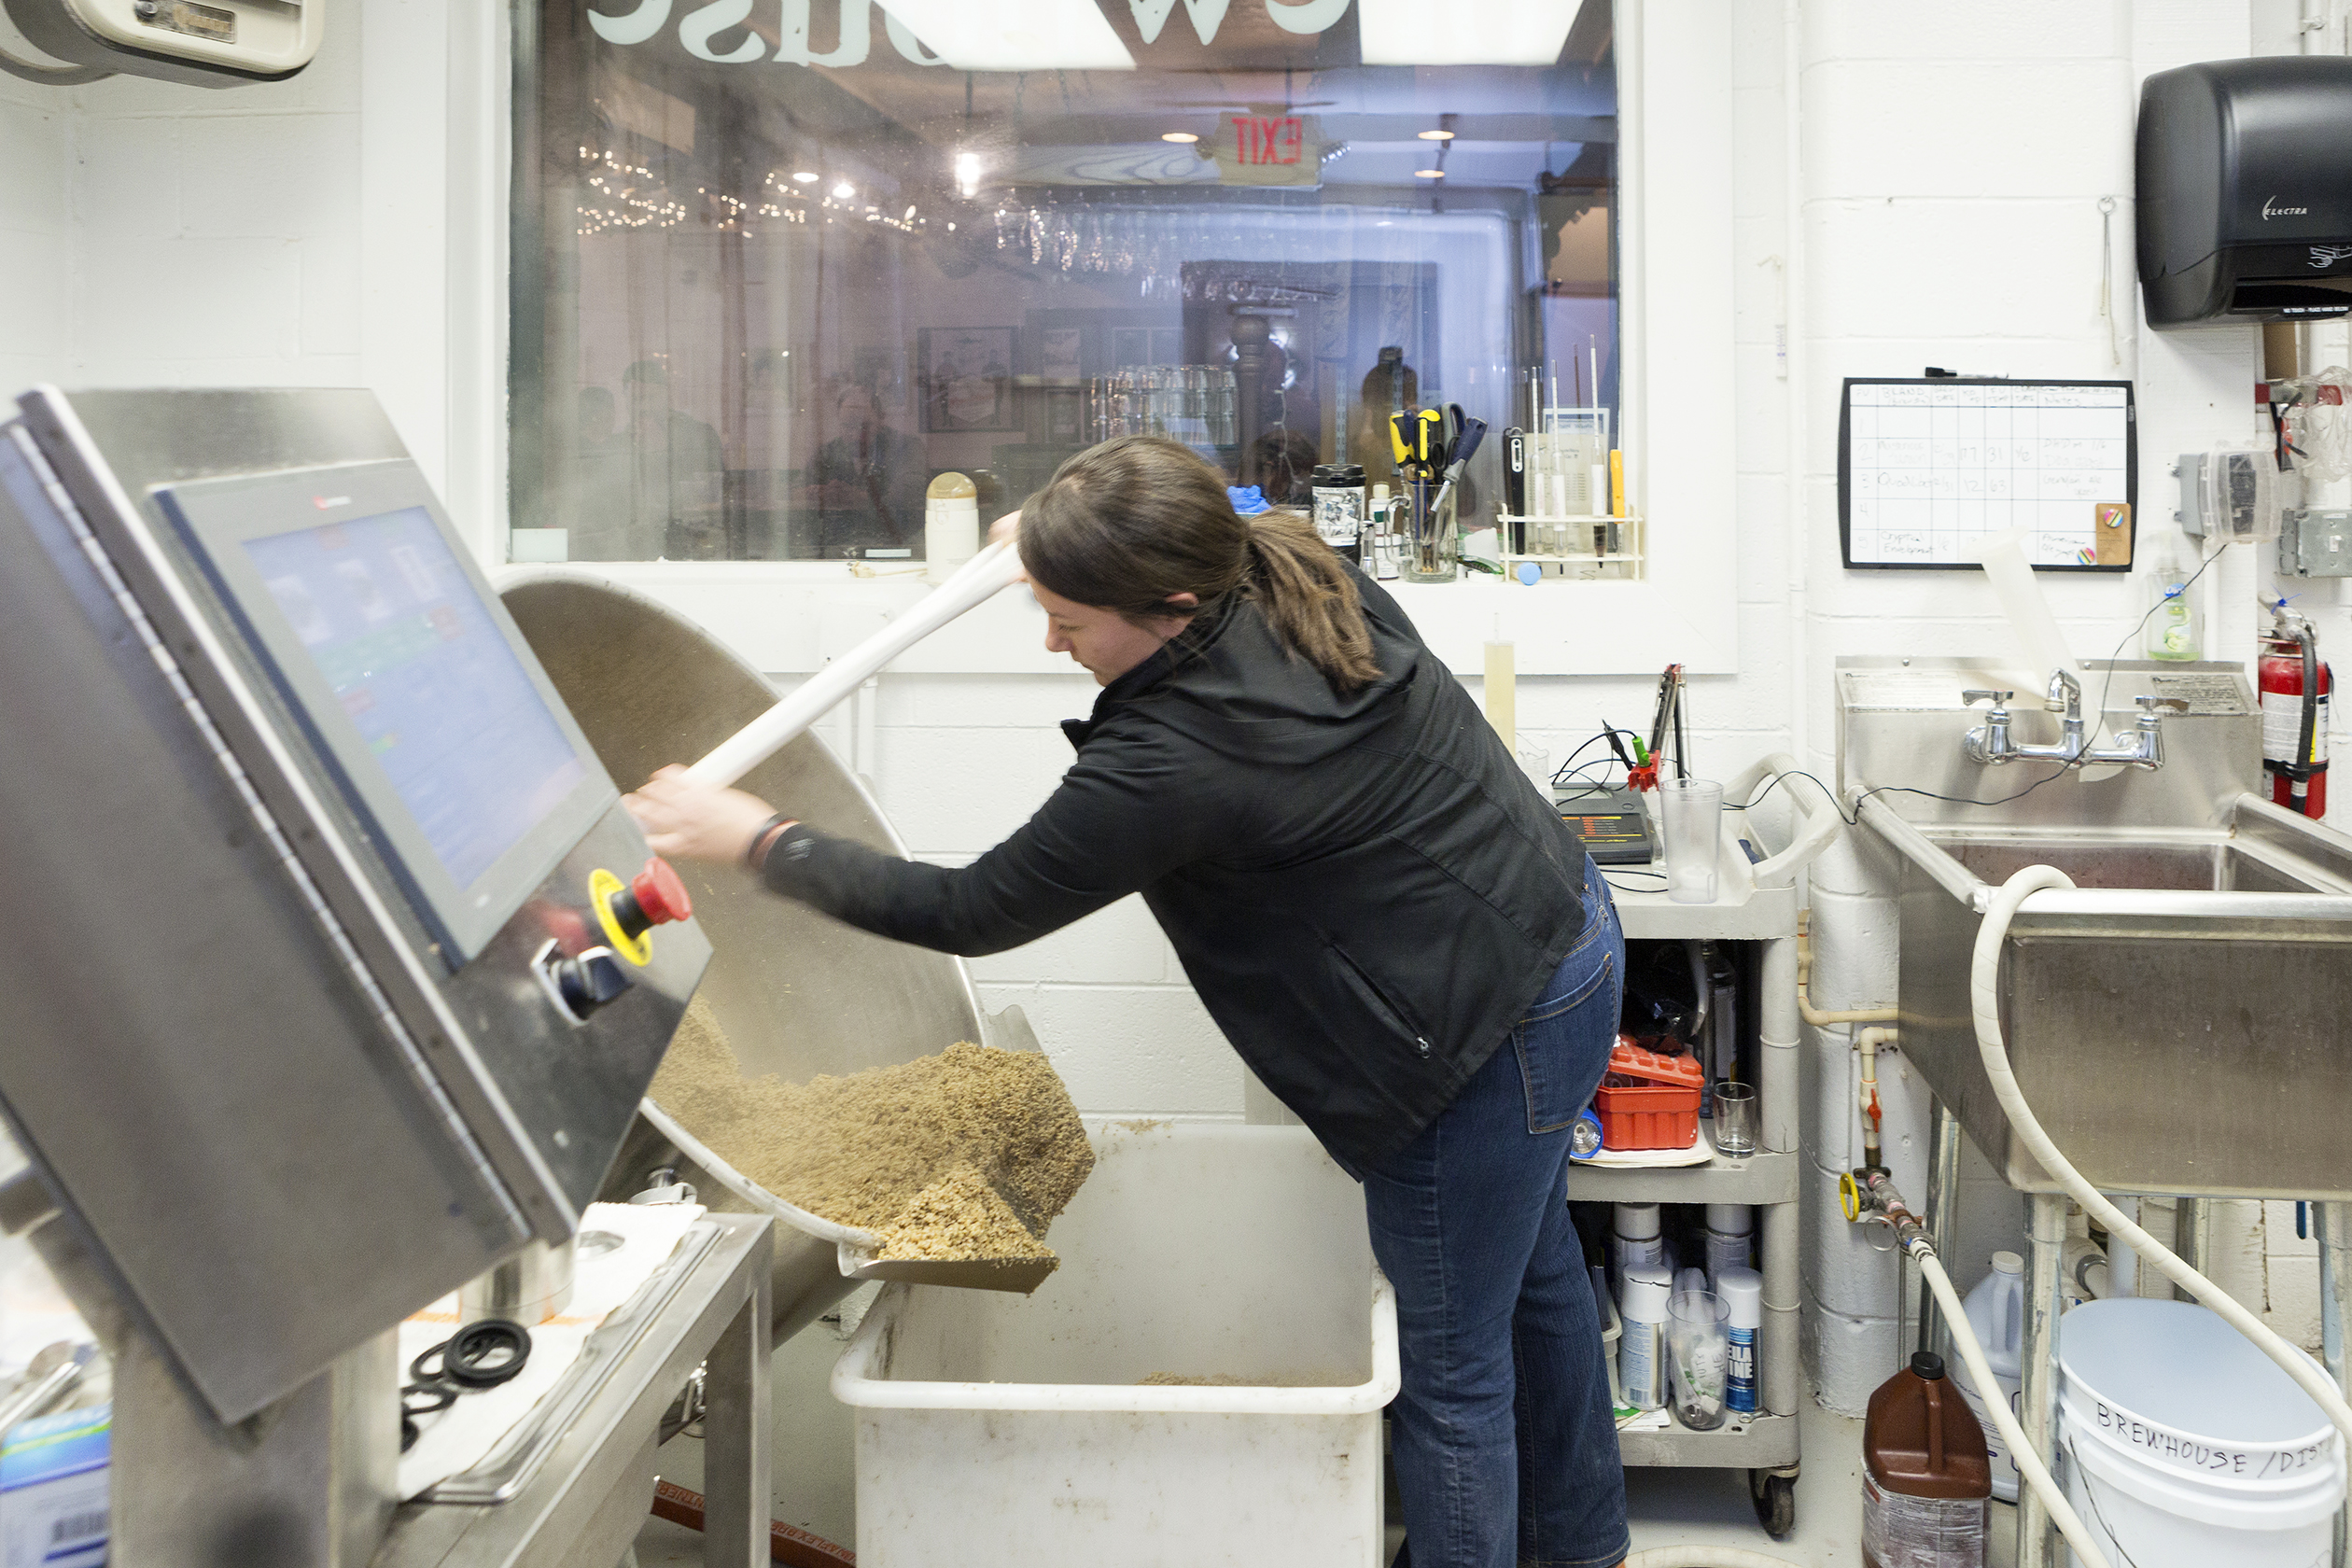 Rehoboth Beach, DE, Jan 12th 2016, Sam Calagione owner of Dogfish Beer is making a test batch at the original Brewpub at Dogfish Head Brewing and Eats. A lime induced brew. Photography By Christopher Lane/ Fortune Mag